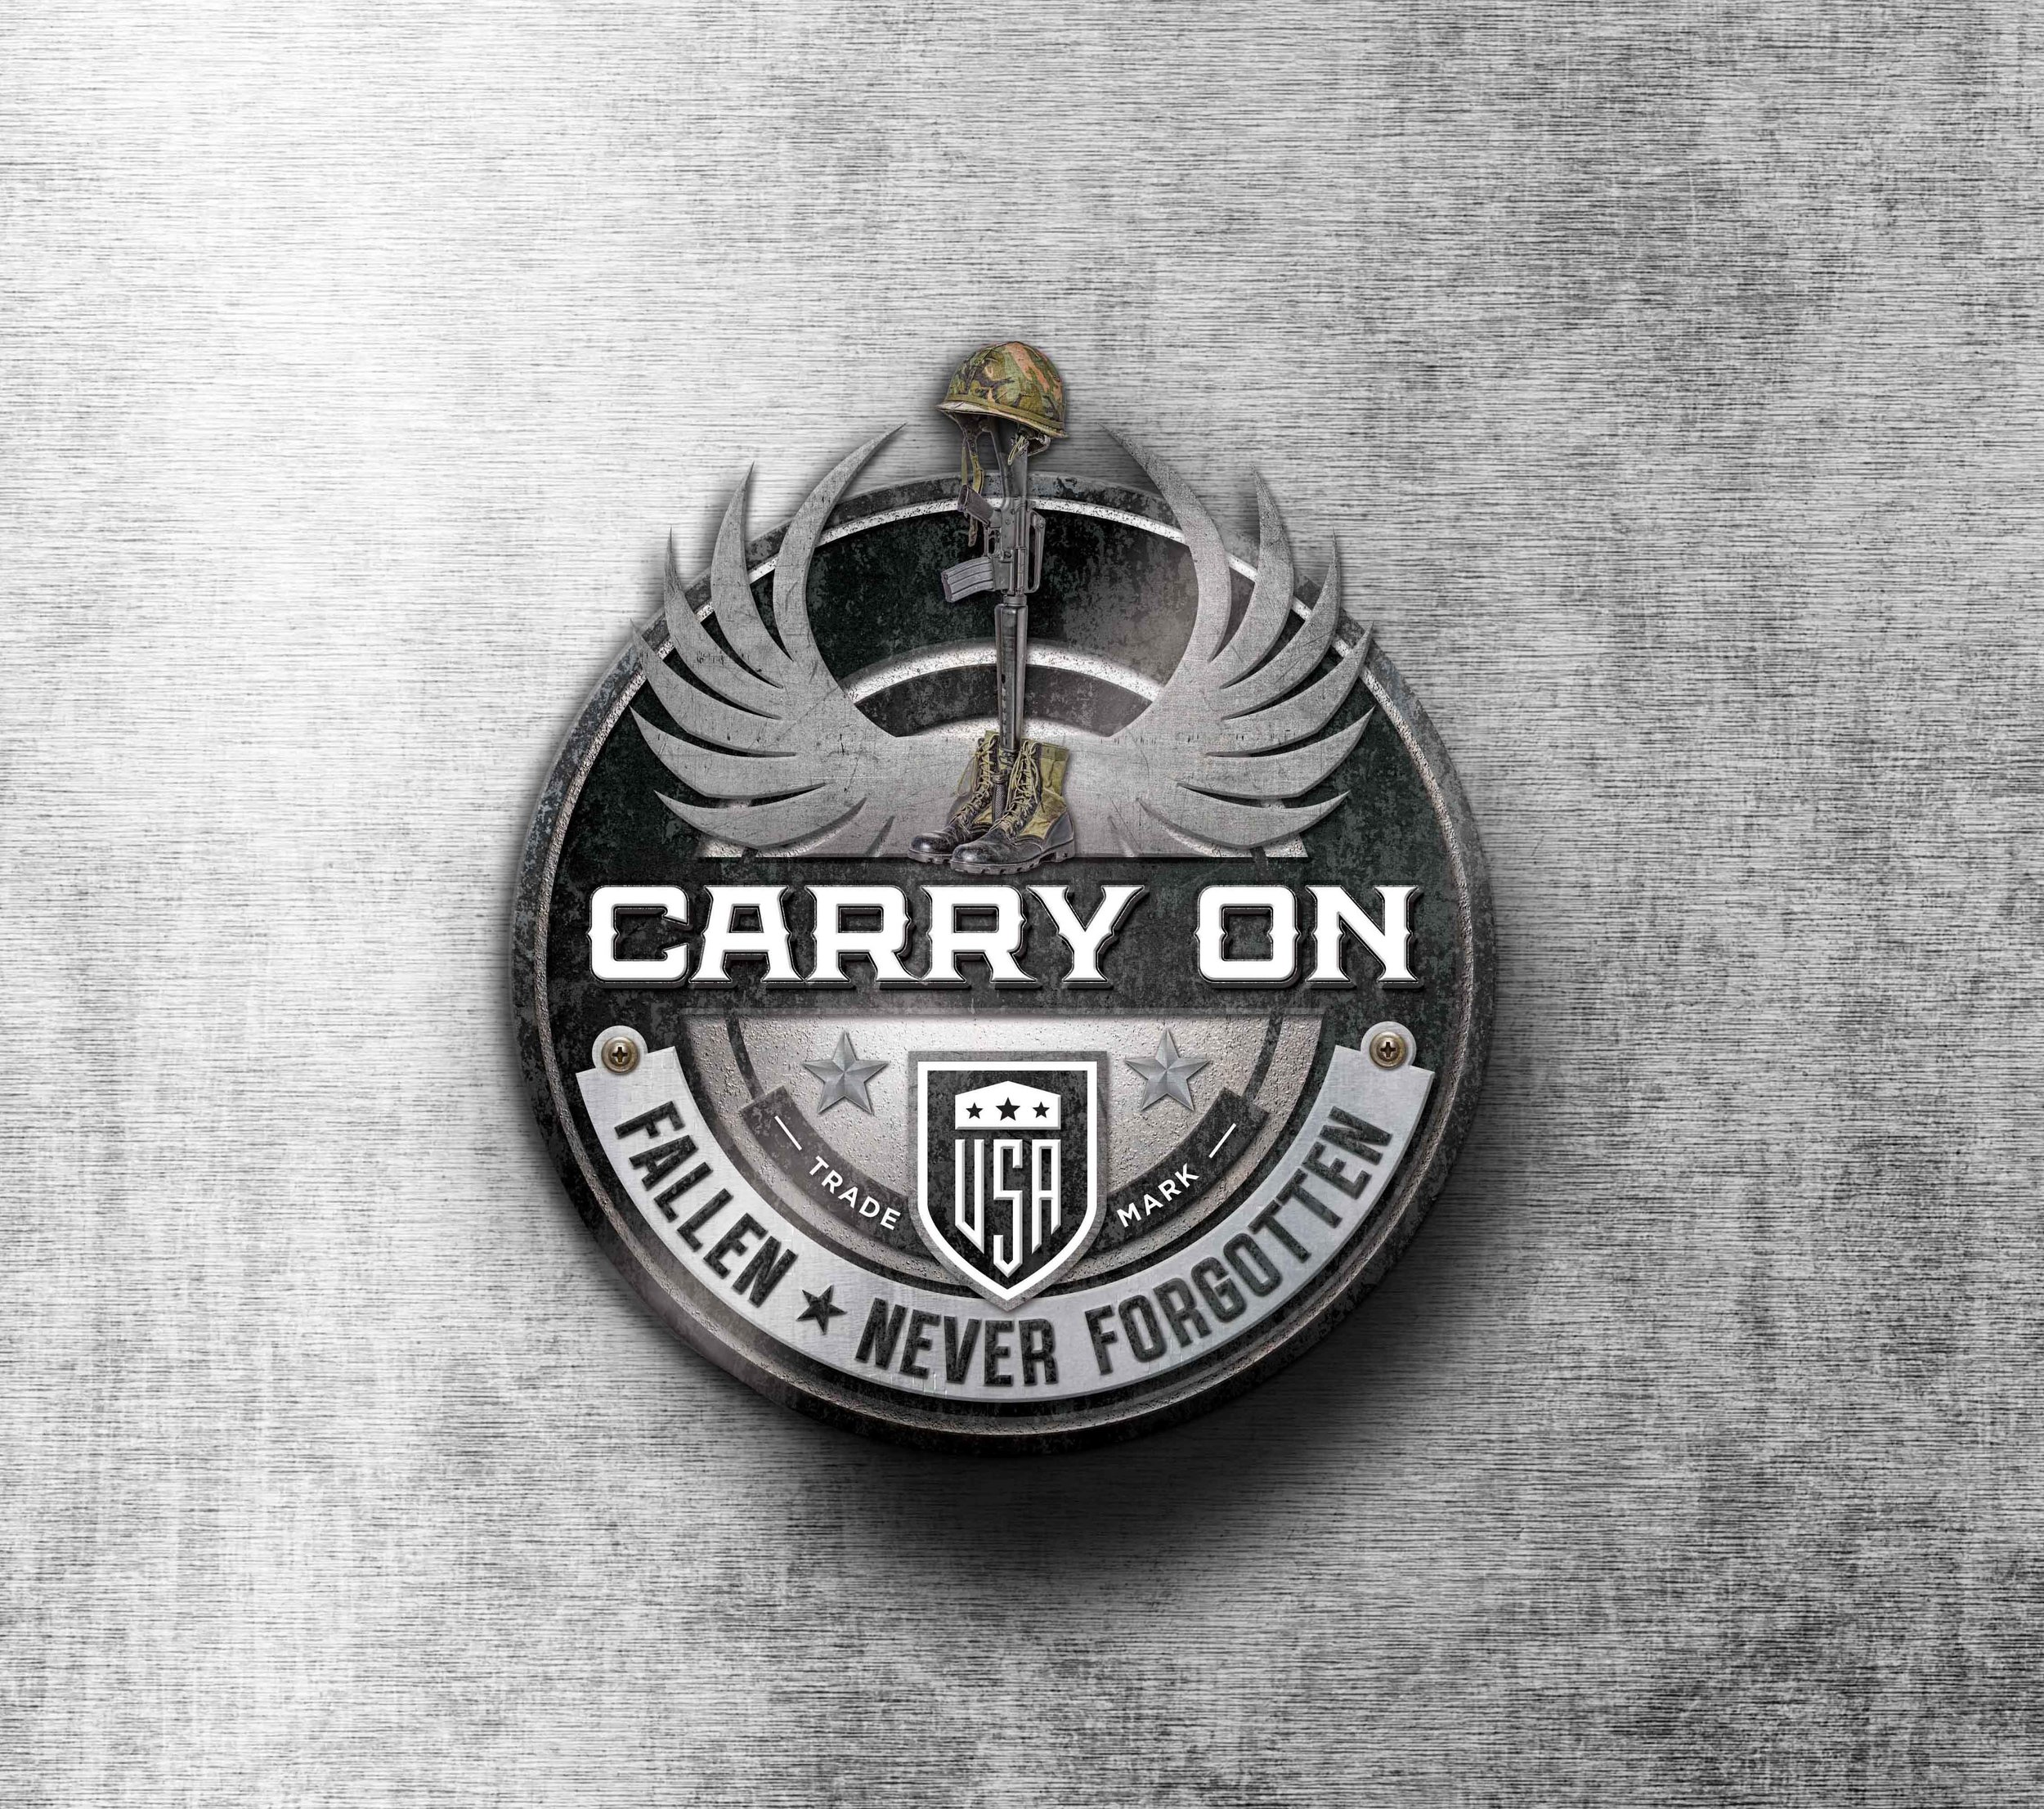 Logo design for Carry On. Organization helping Veterans across the USA.